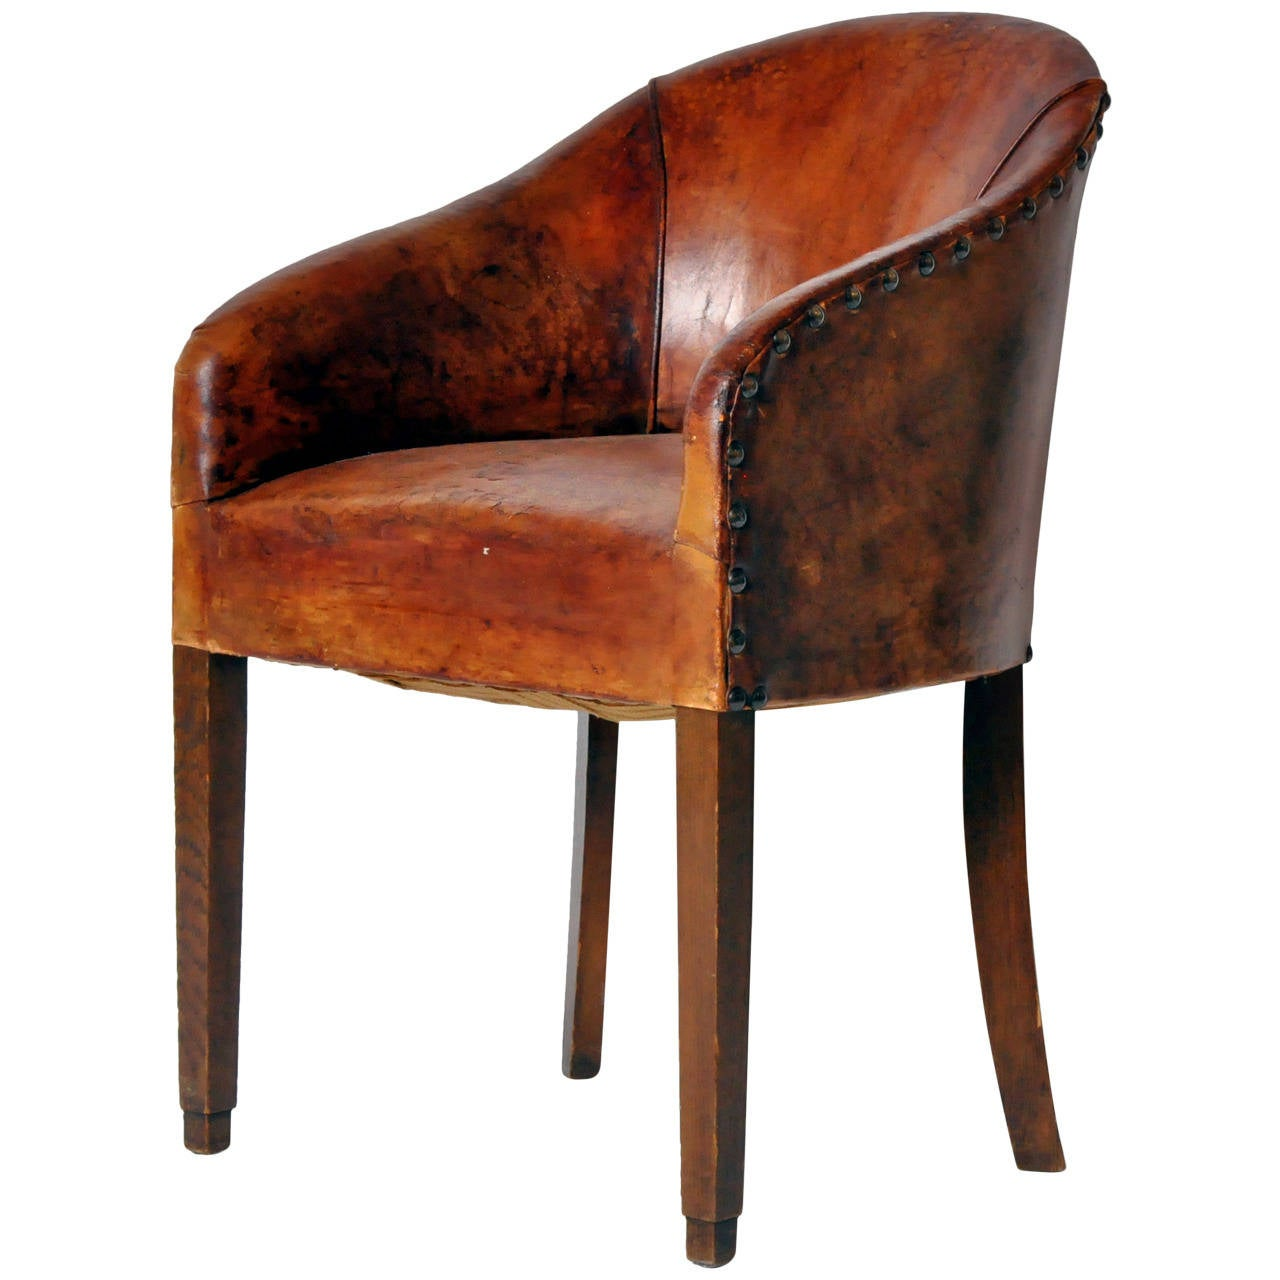 French Leather Tub Chair at 1stdibs : 2425972l from www.1stdibs.com size 1280 x 1280 jpeg 101kB